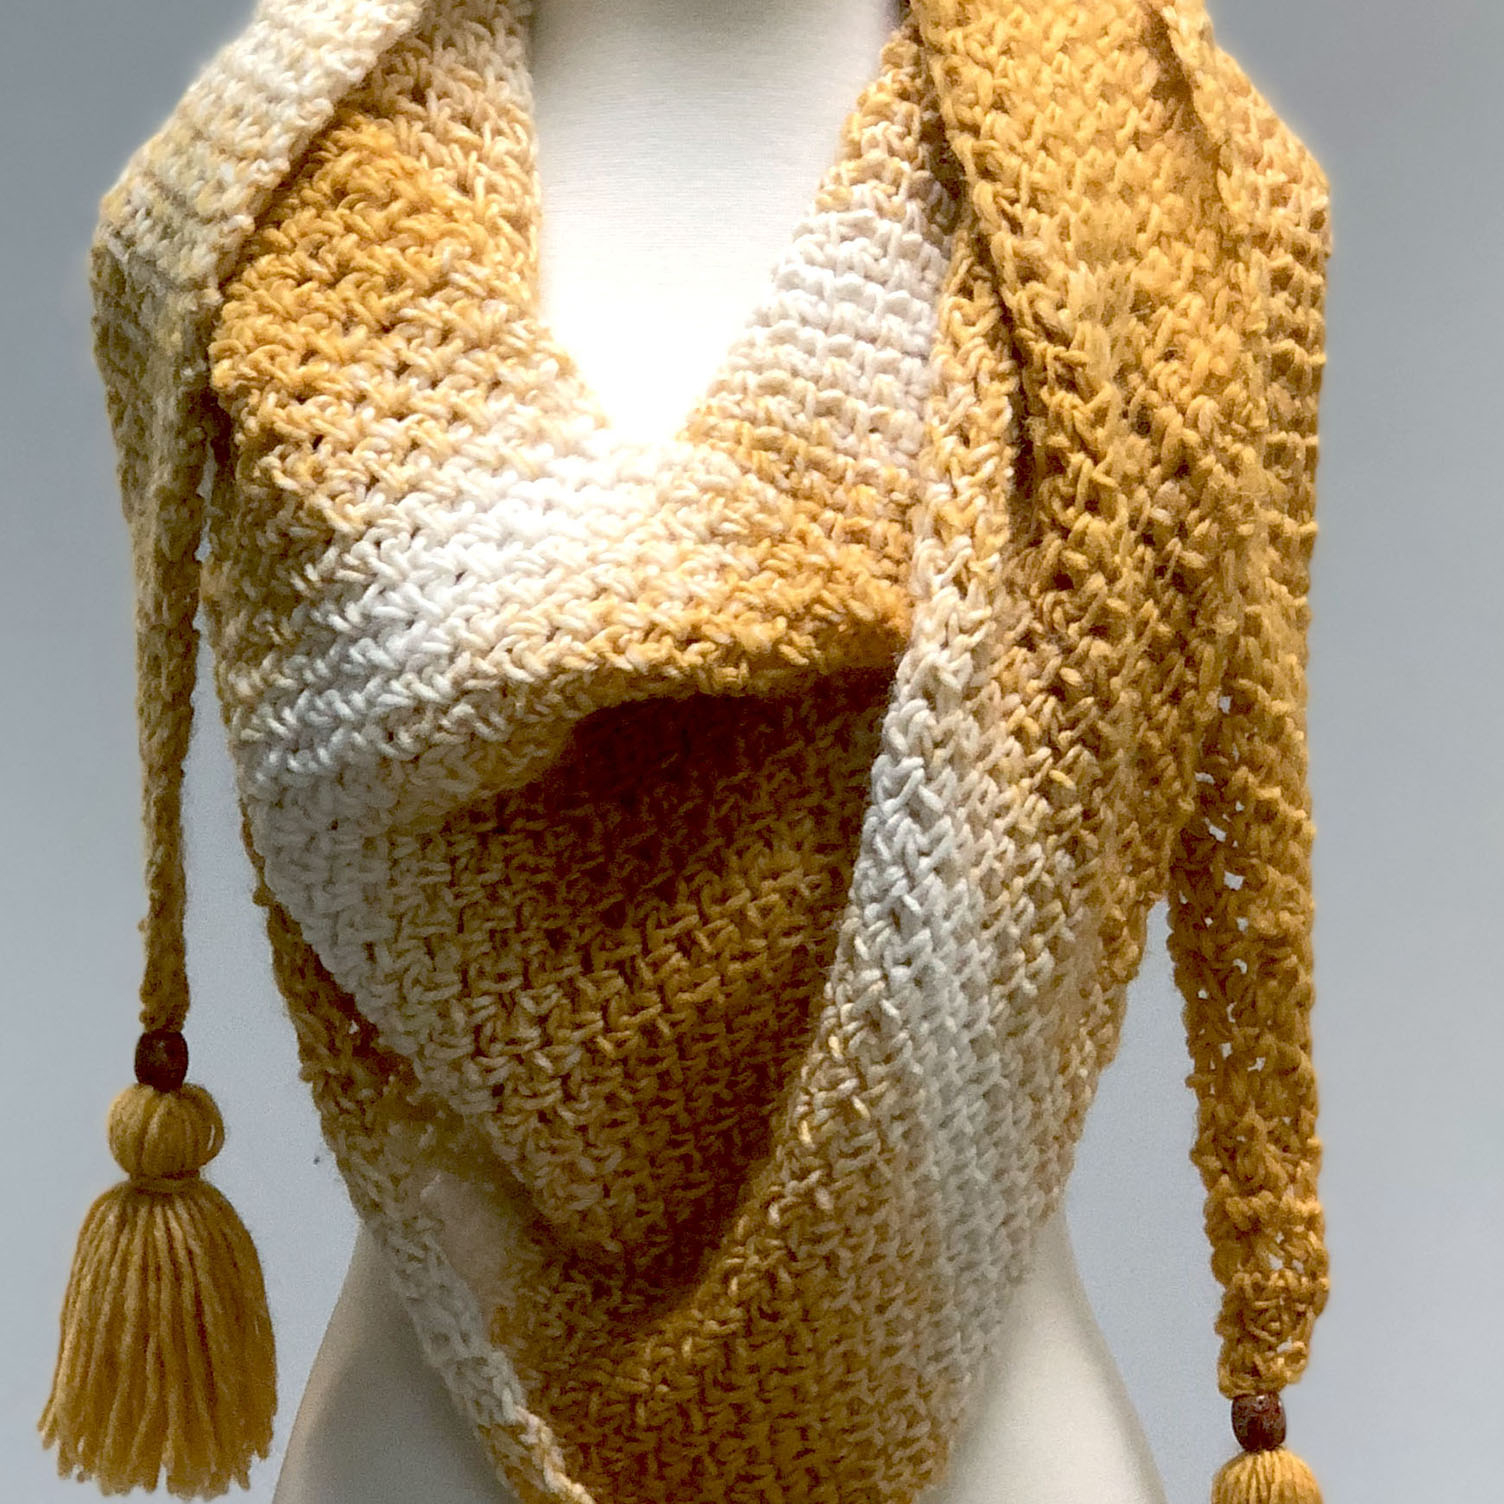 Haystacks crochet shawl in yellow and white on dress form